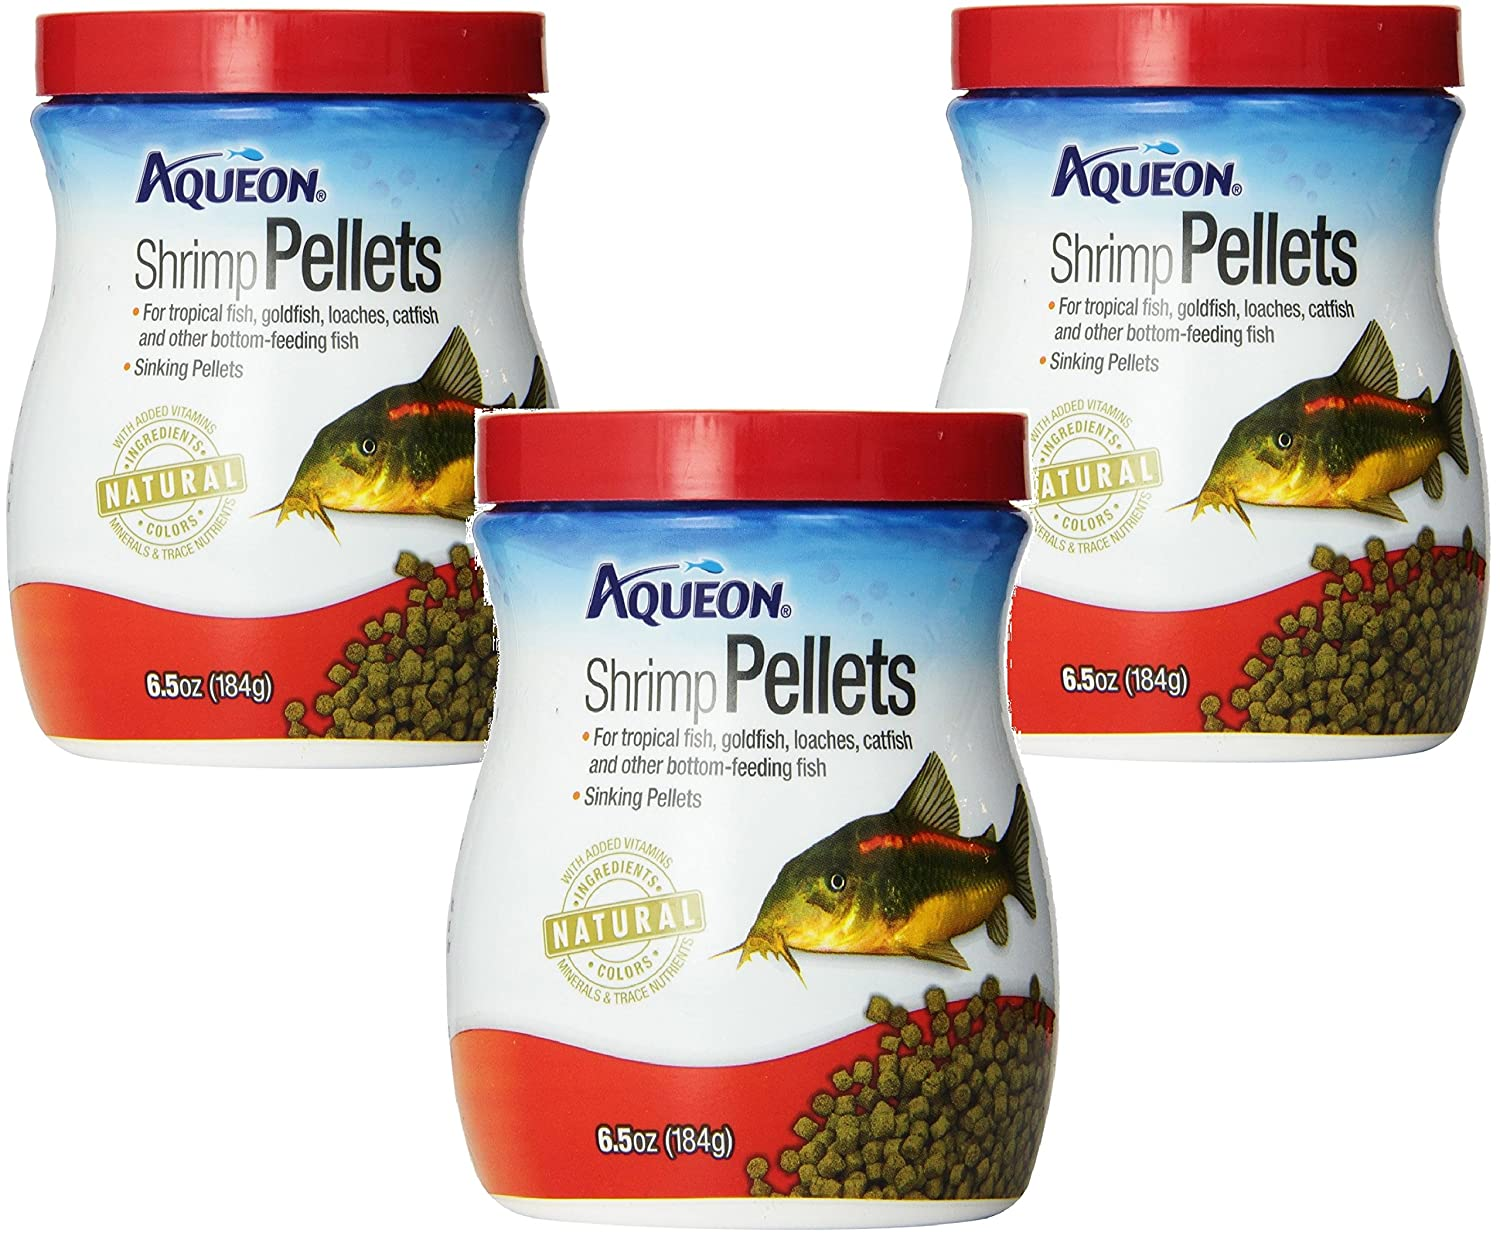 (3 Pack) Aqueon Shrimp Pellets Fish Food, 6.5 Ounces each